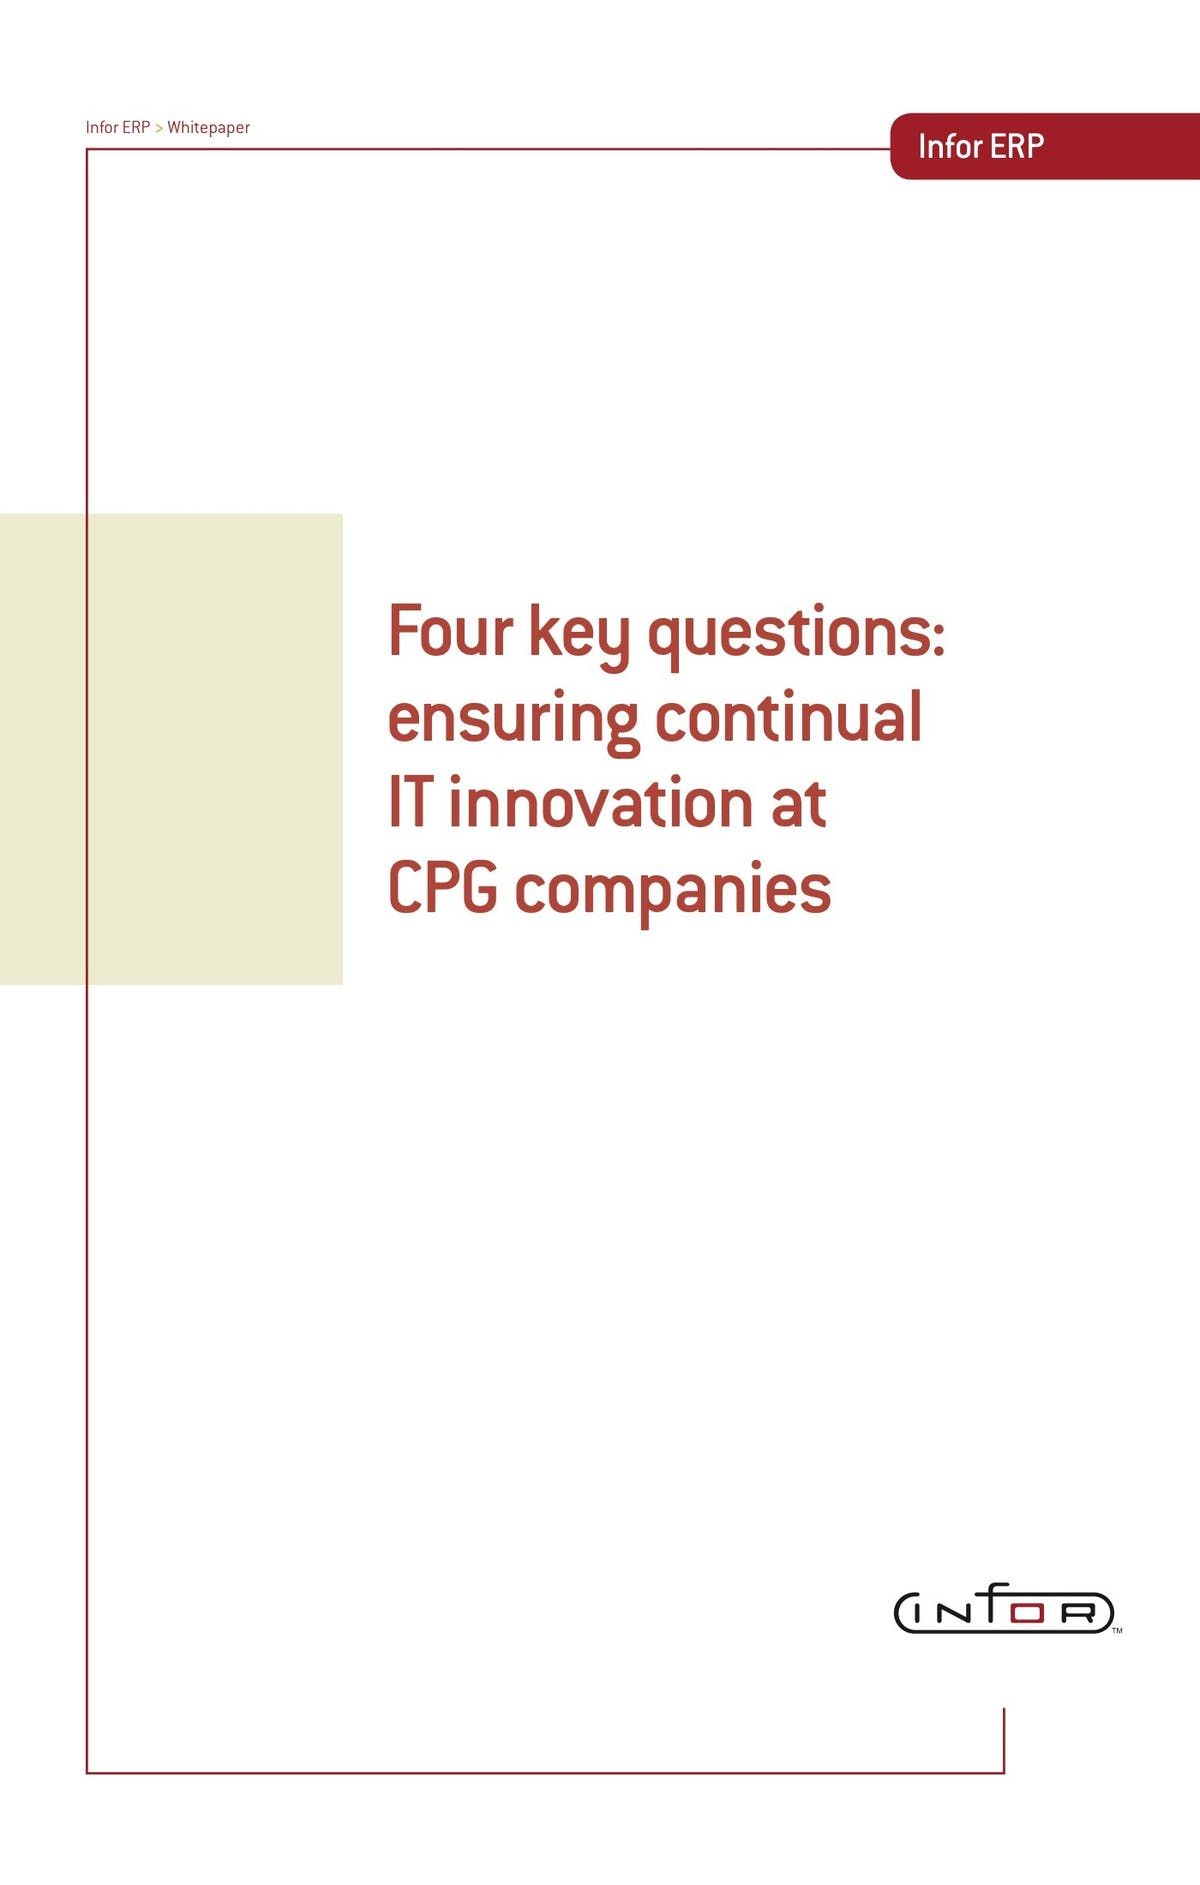 Infor VISUAL White Paper - Four Key Questions: Ensuring Continual IT Innovation at CPG Companies